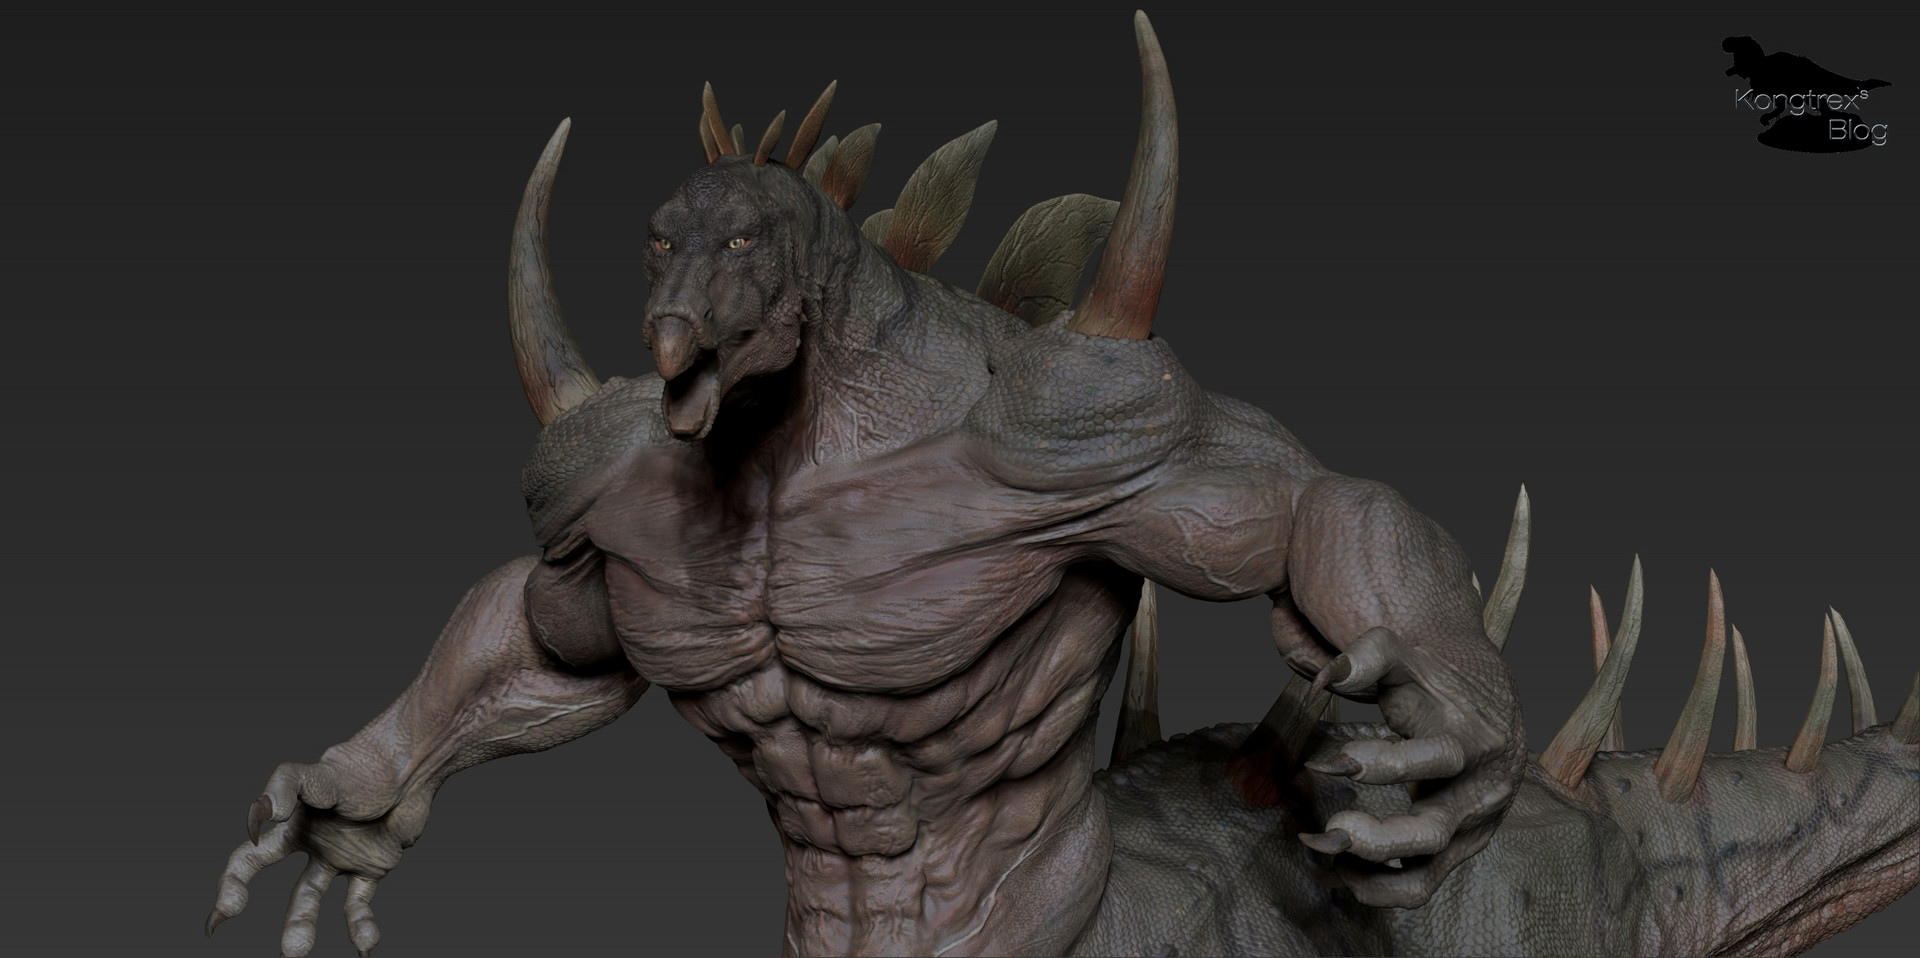 Jin kyeom kim zbrush document13